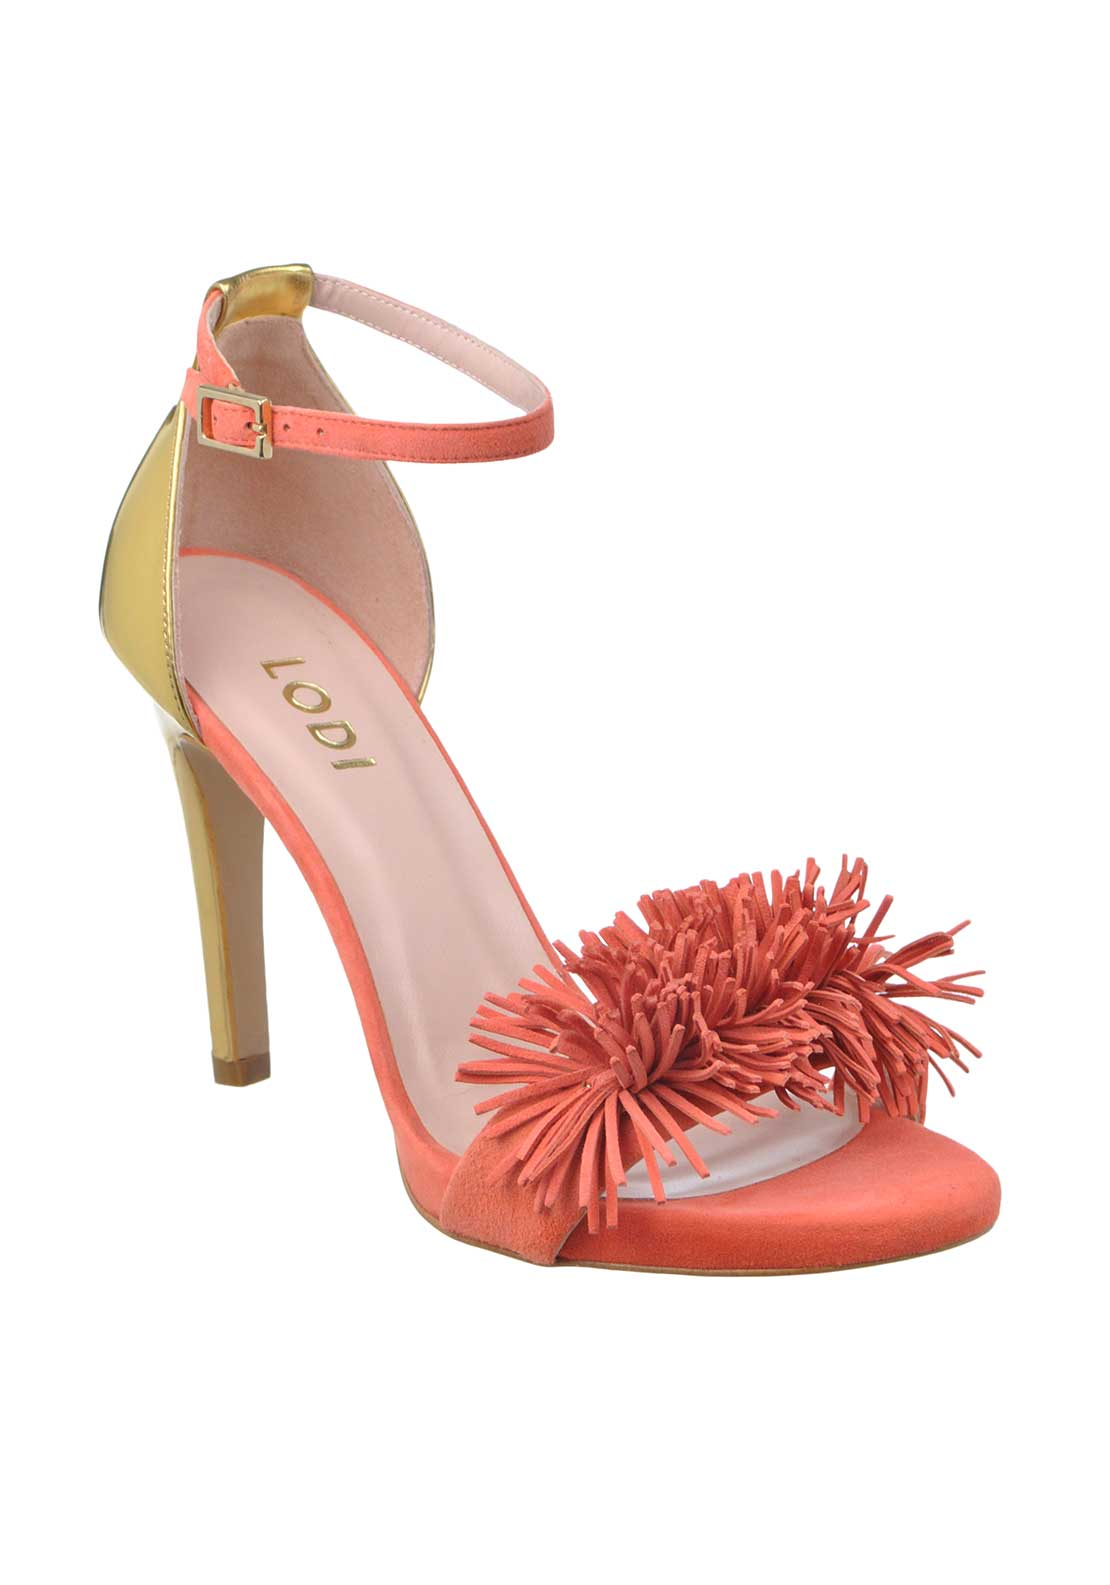 McElhinney's by Lodi Year Suede Fringed Open Toe Heeled Sandals, Peach Coral